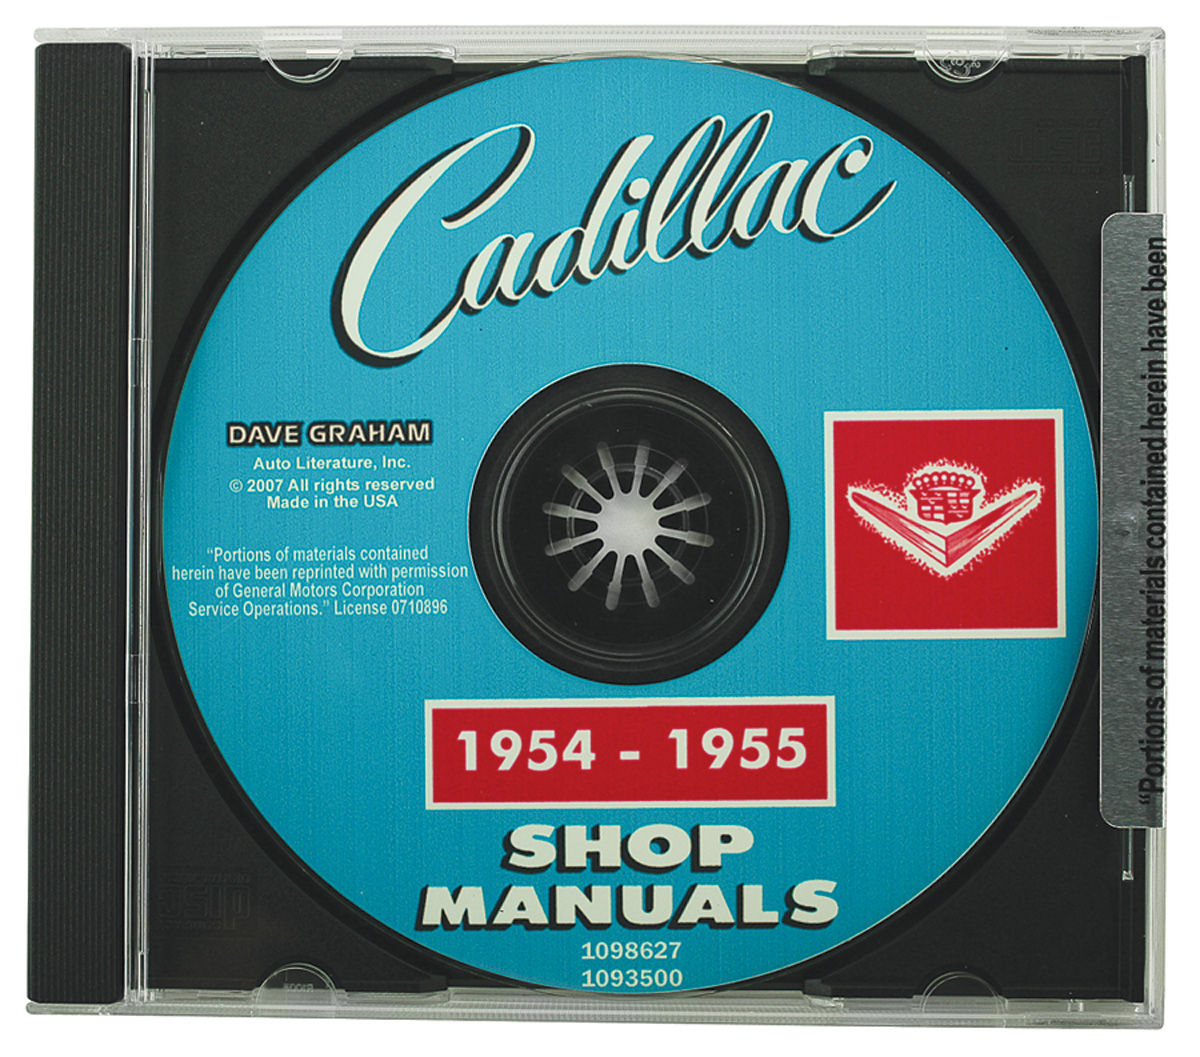 Factory Shop Manuals, CD-ROM, 1950-51 Cadillac